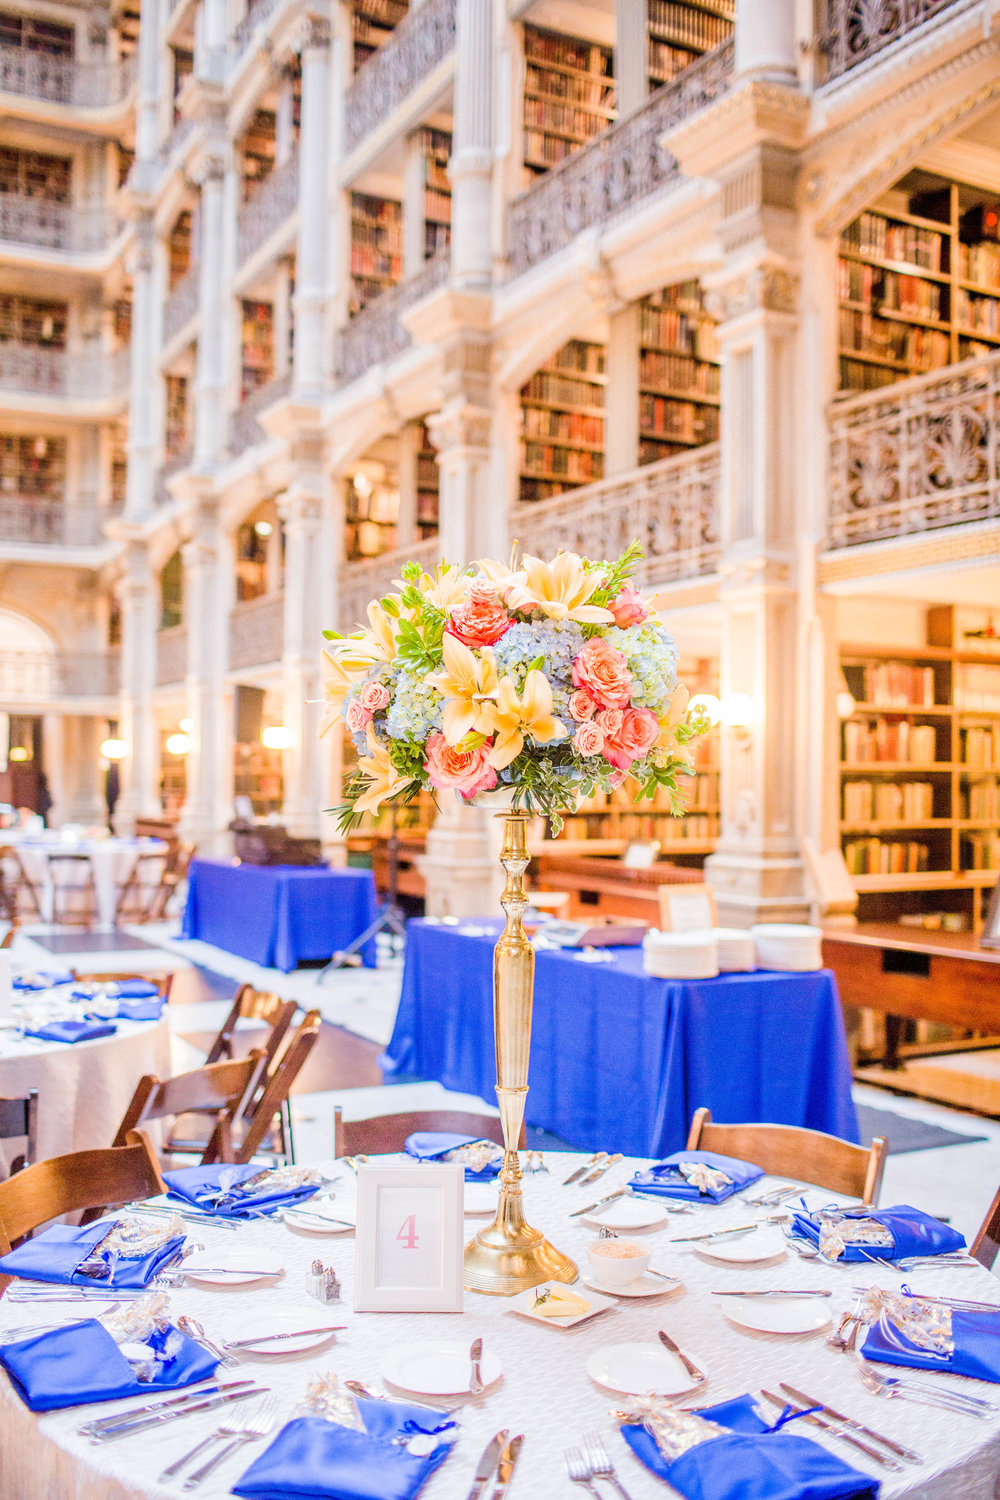 George_peabody_library_wedding_kay_pea_photography_reception_details